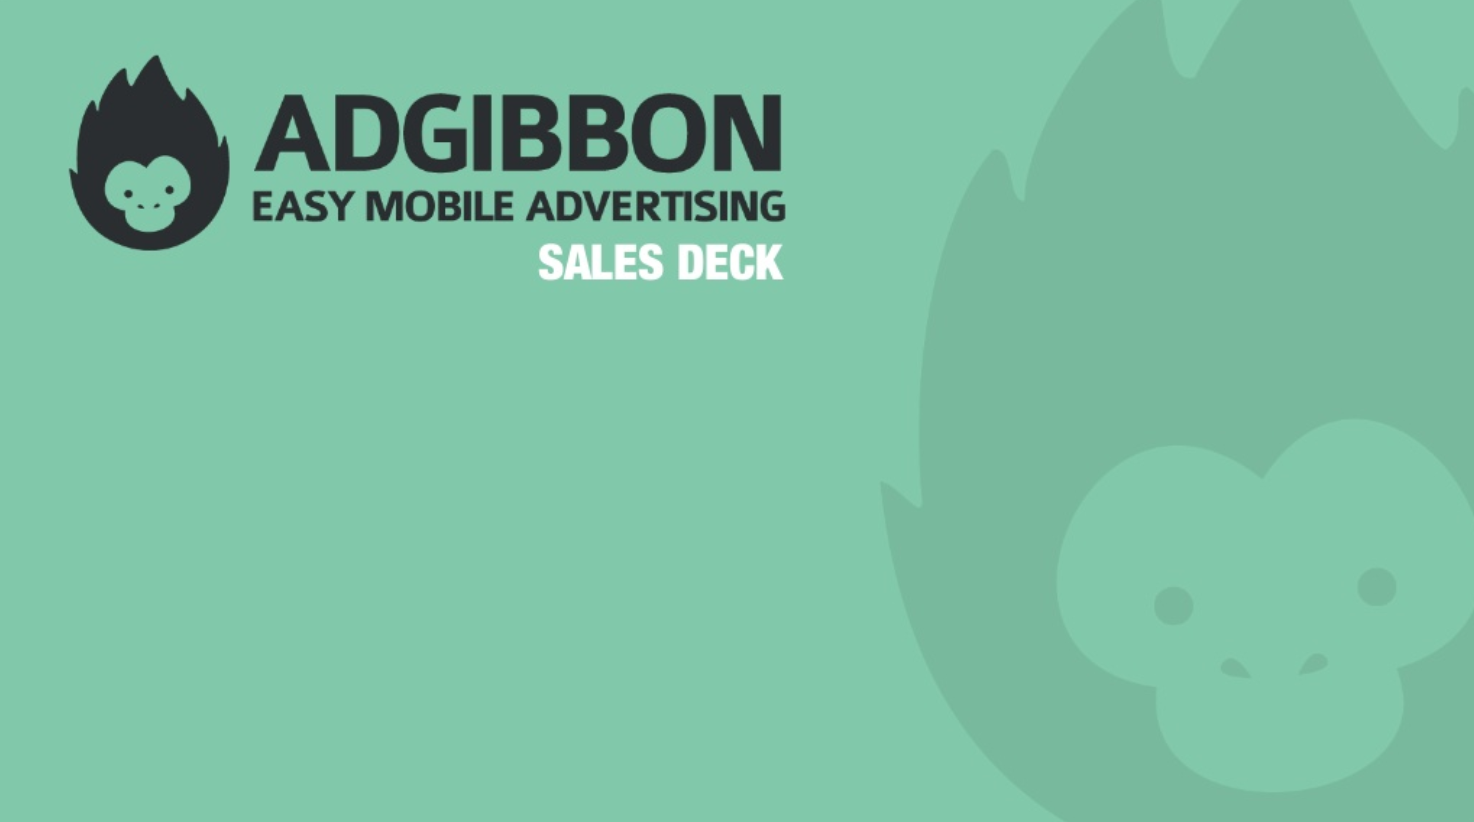 adgibbon sales deck